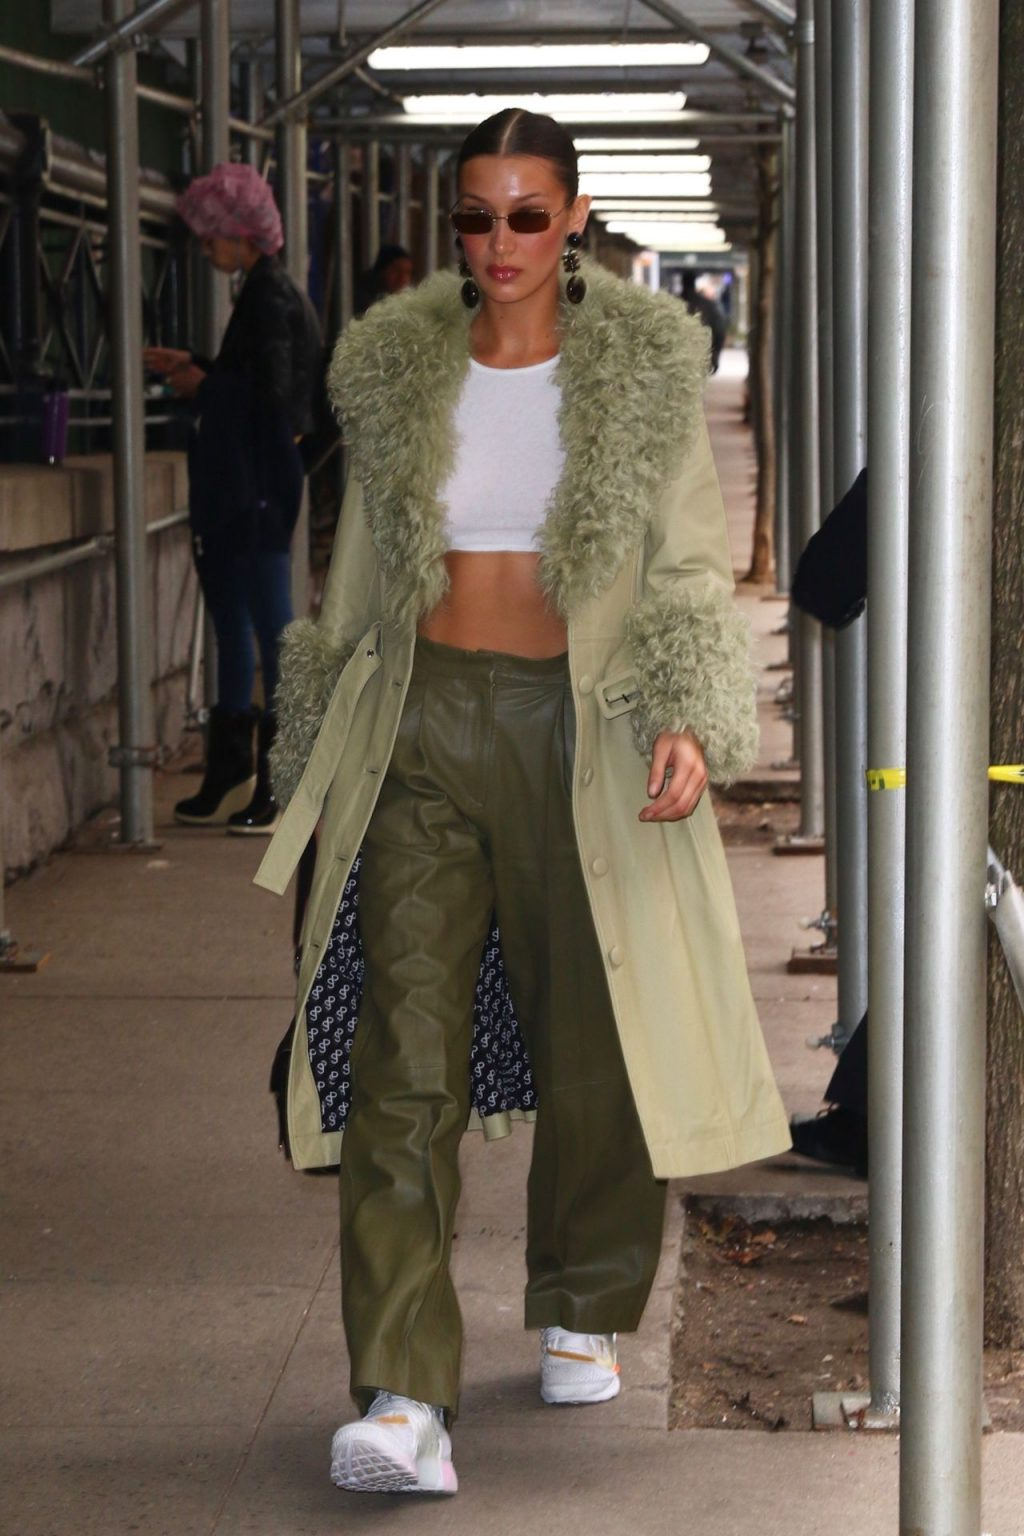 Bella Hadid See through The Fappening Blog 55 1024x1536 - Braless Bella Hadid Arrives at the Park Avenue Armory for the Marc Jacobs Fashion Show (59 Photos)